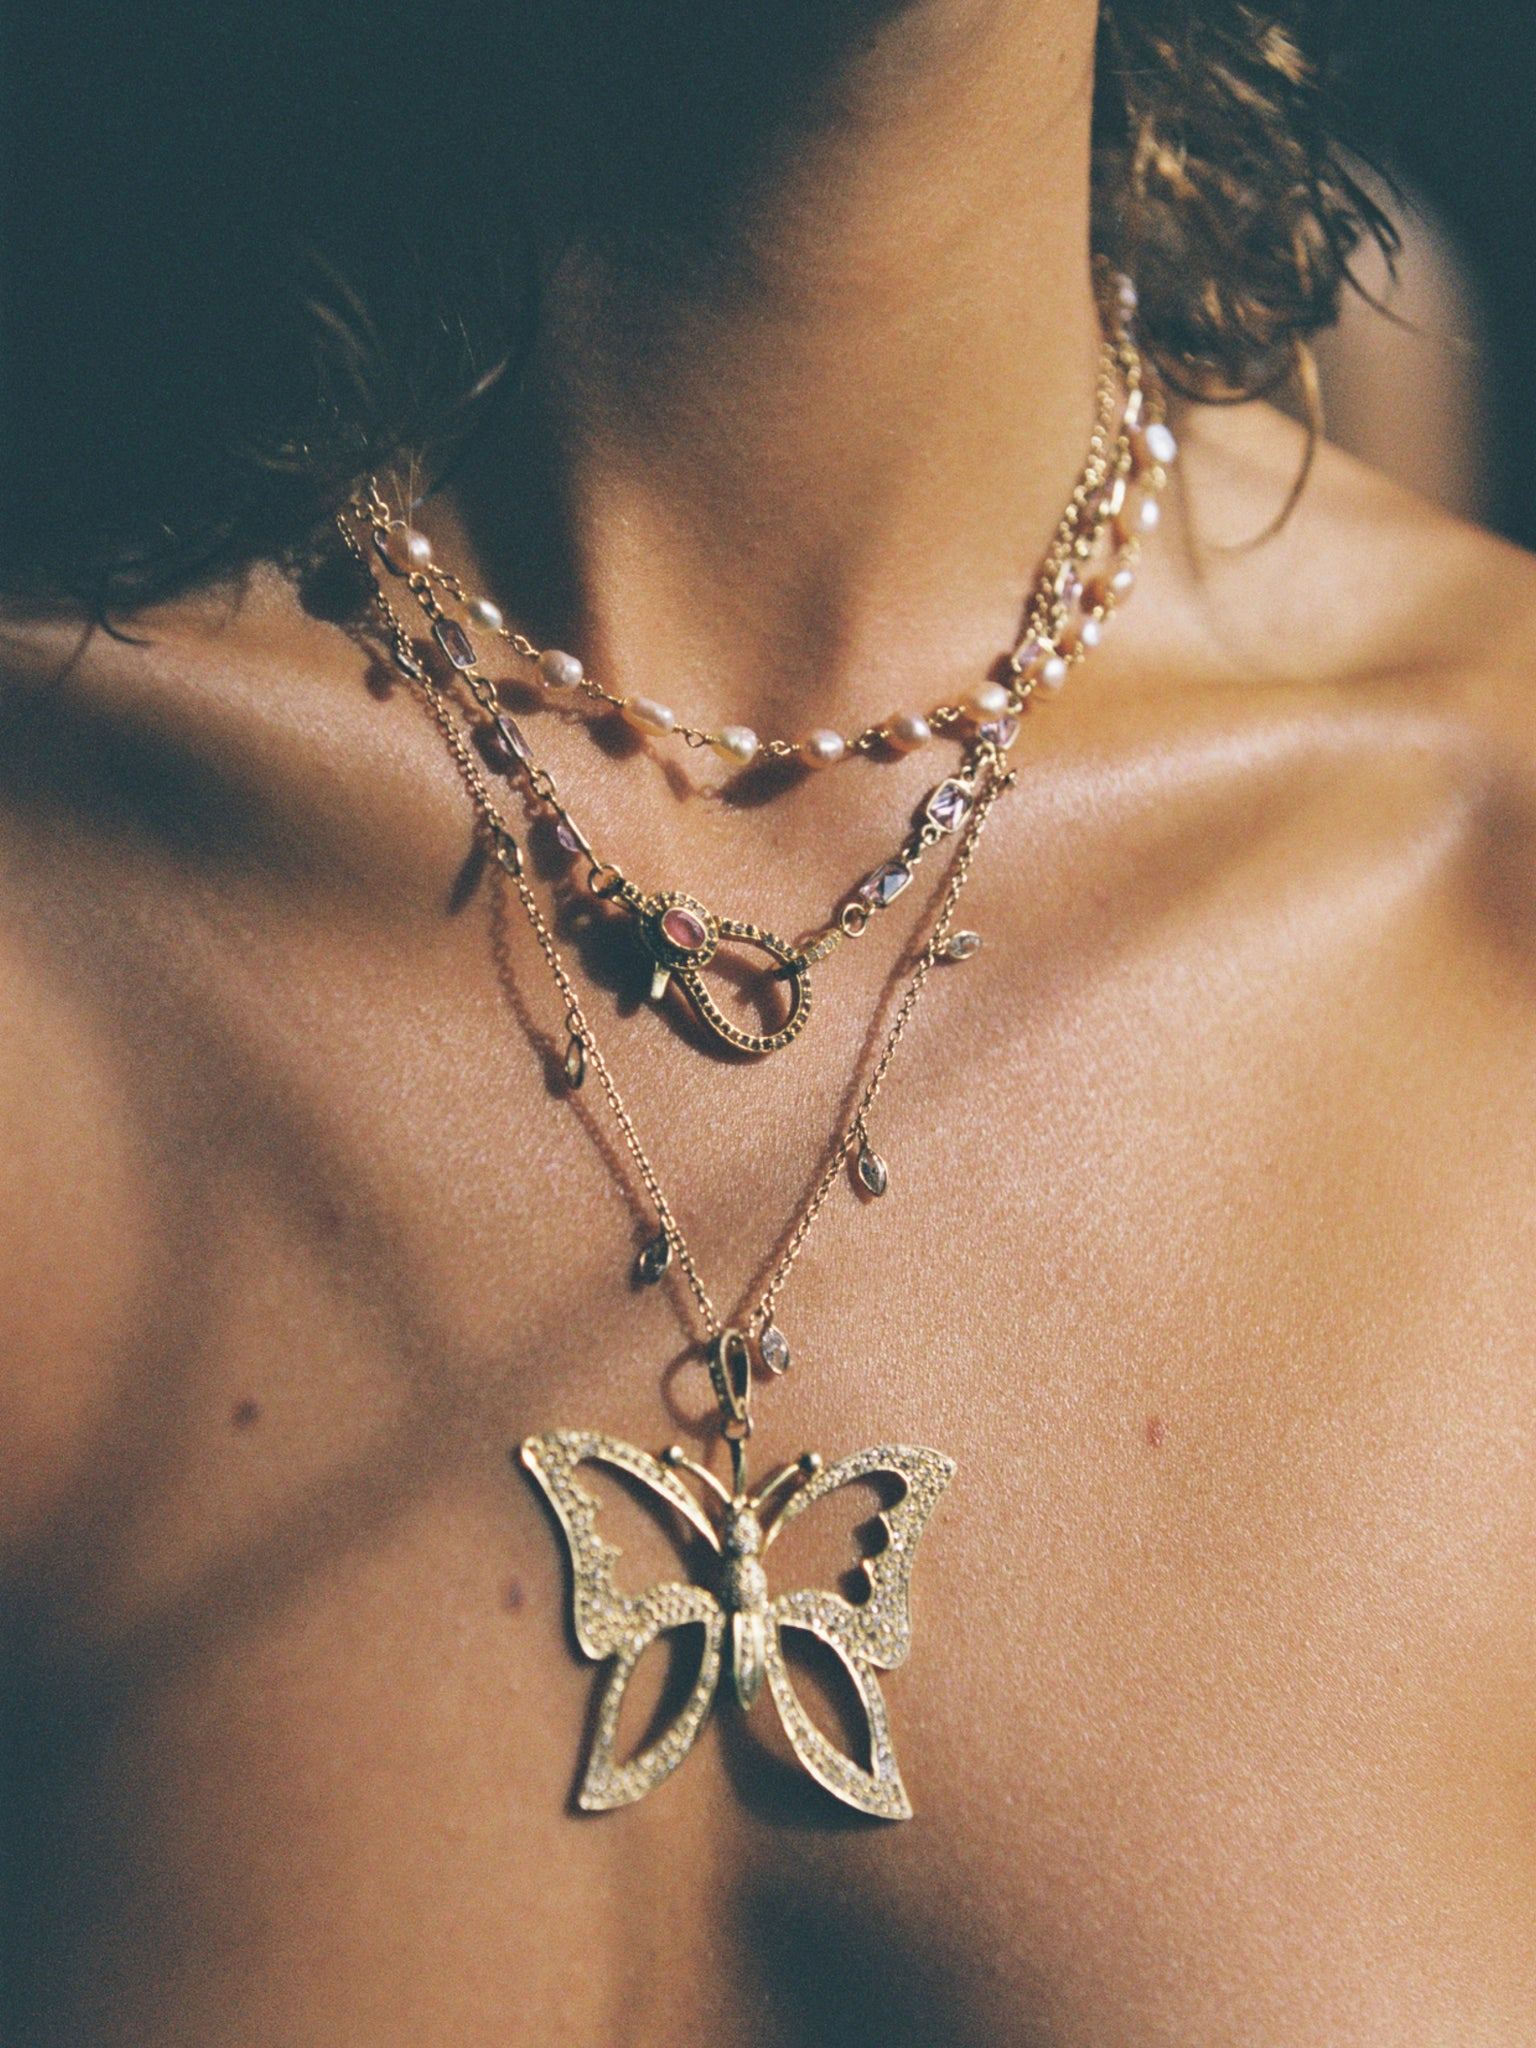 The Elektra Clasp Necklace